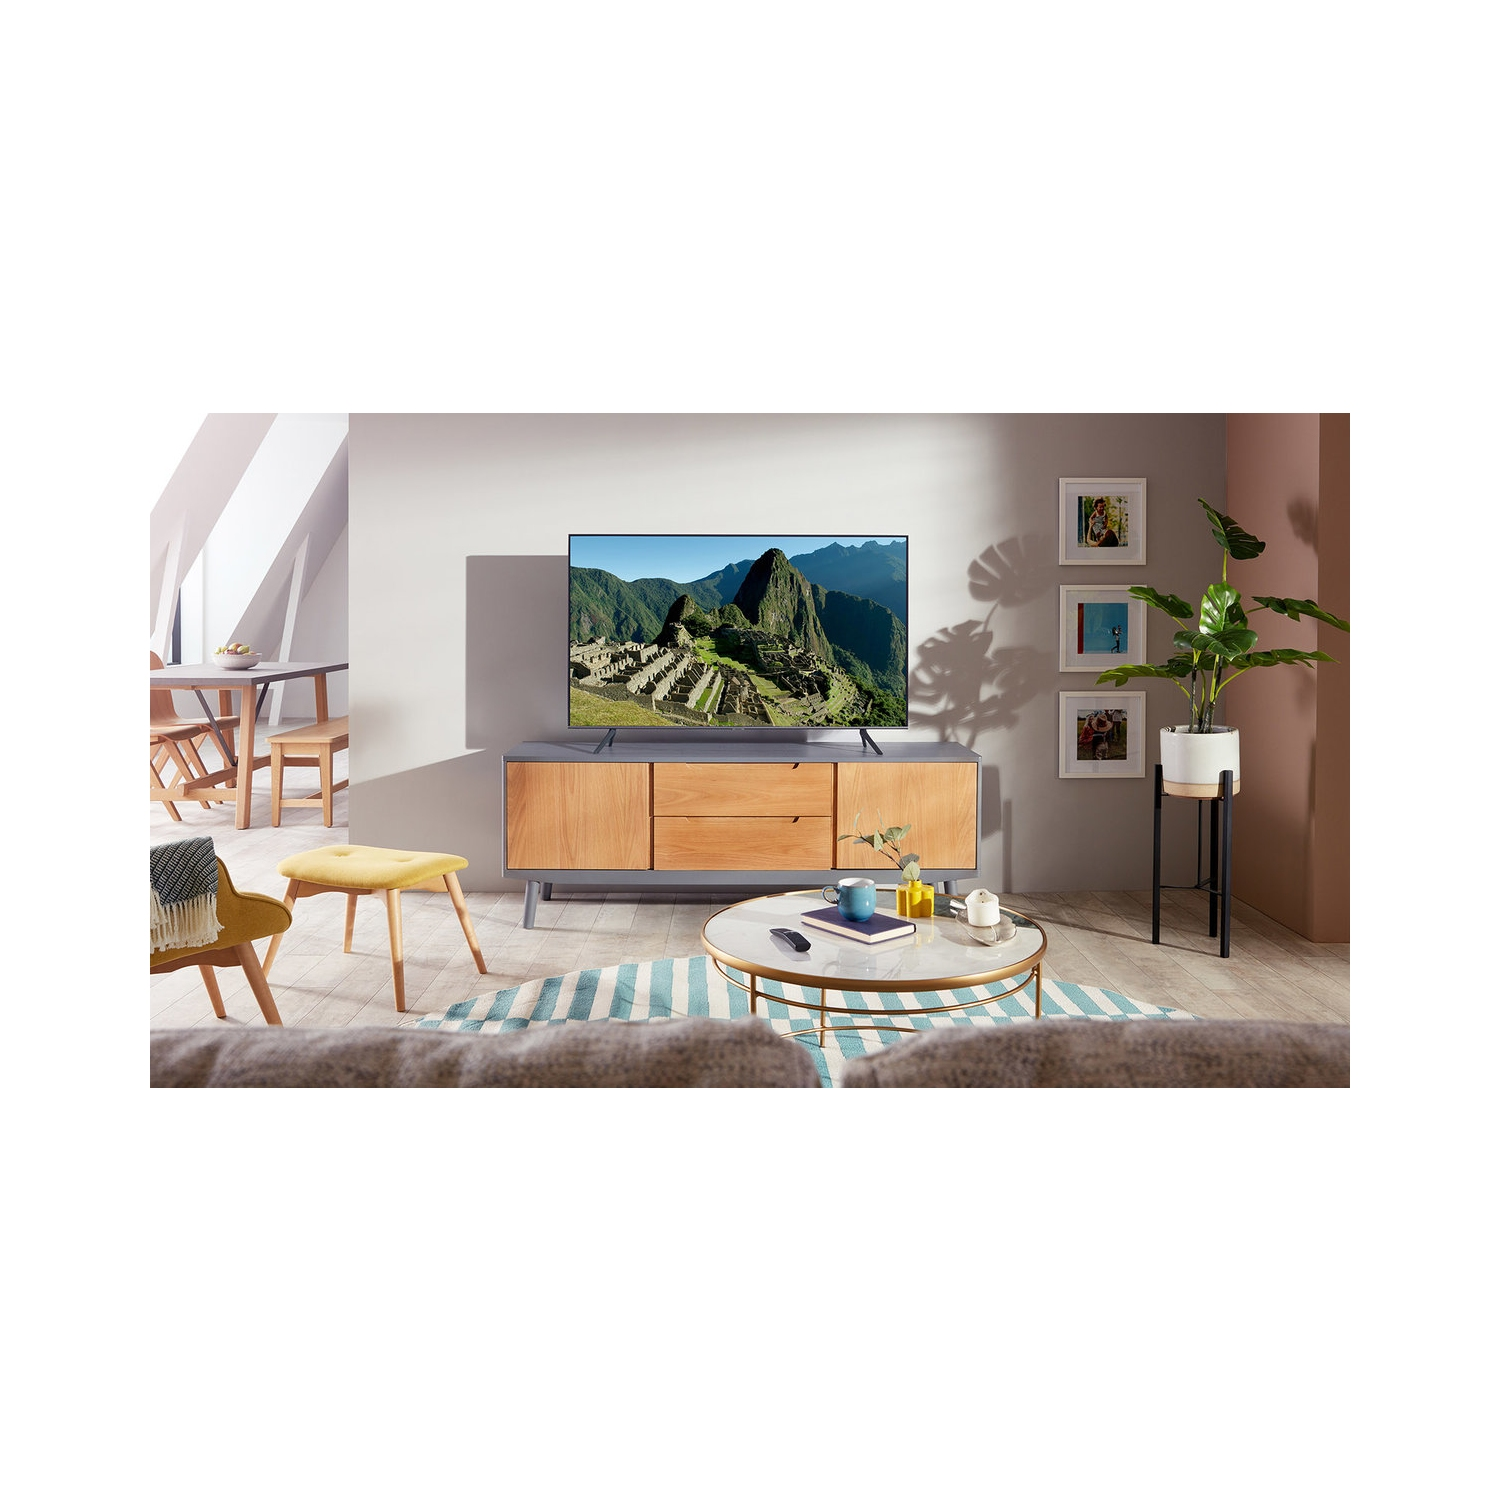 "Samsung QE65Q65T 65"" QLED 4K UHD Smart TV - 2"